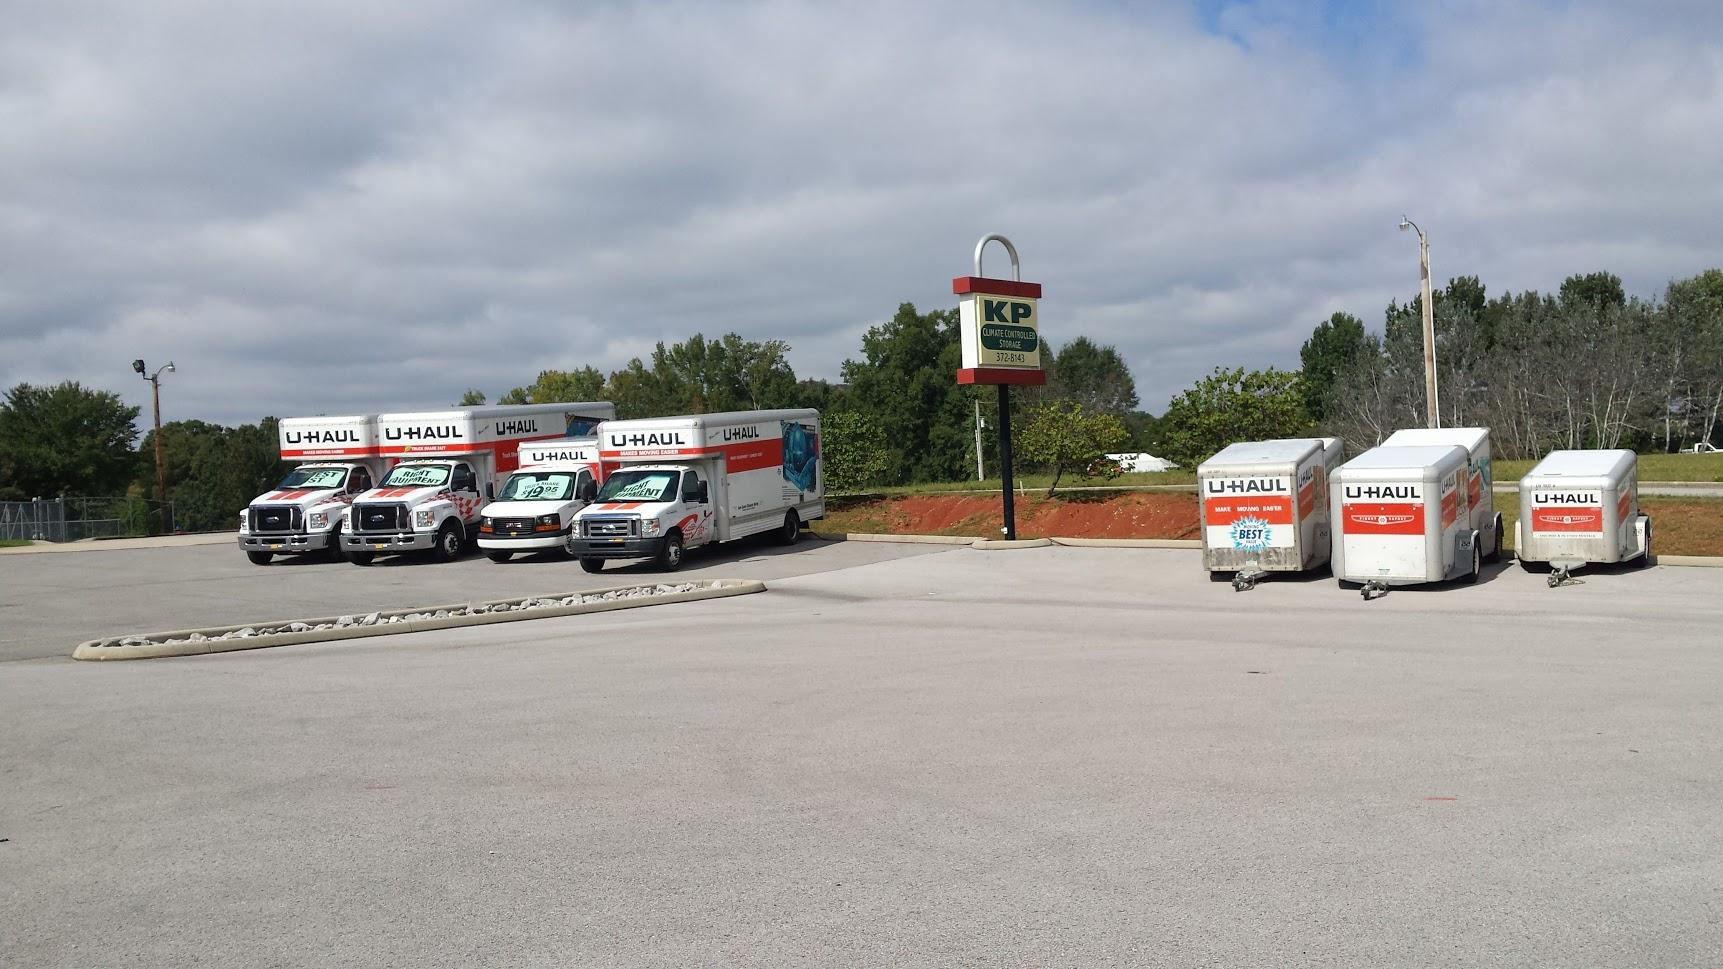 Uhaul Trucks and Trailers!